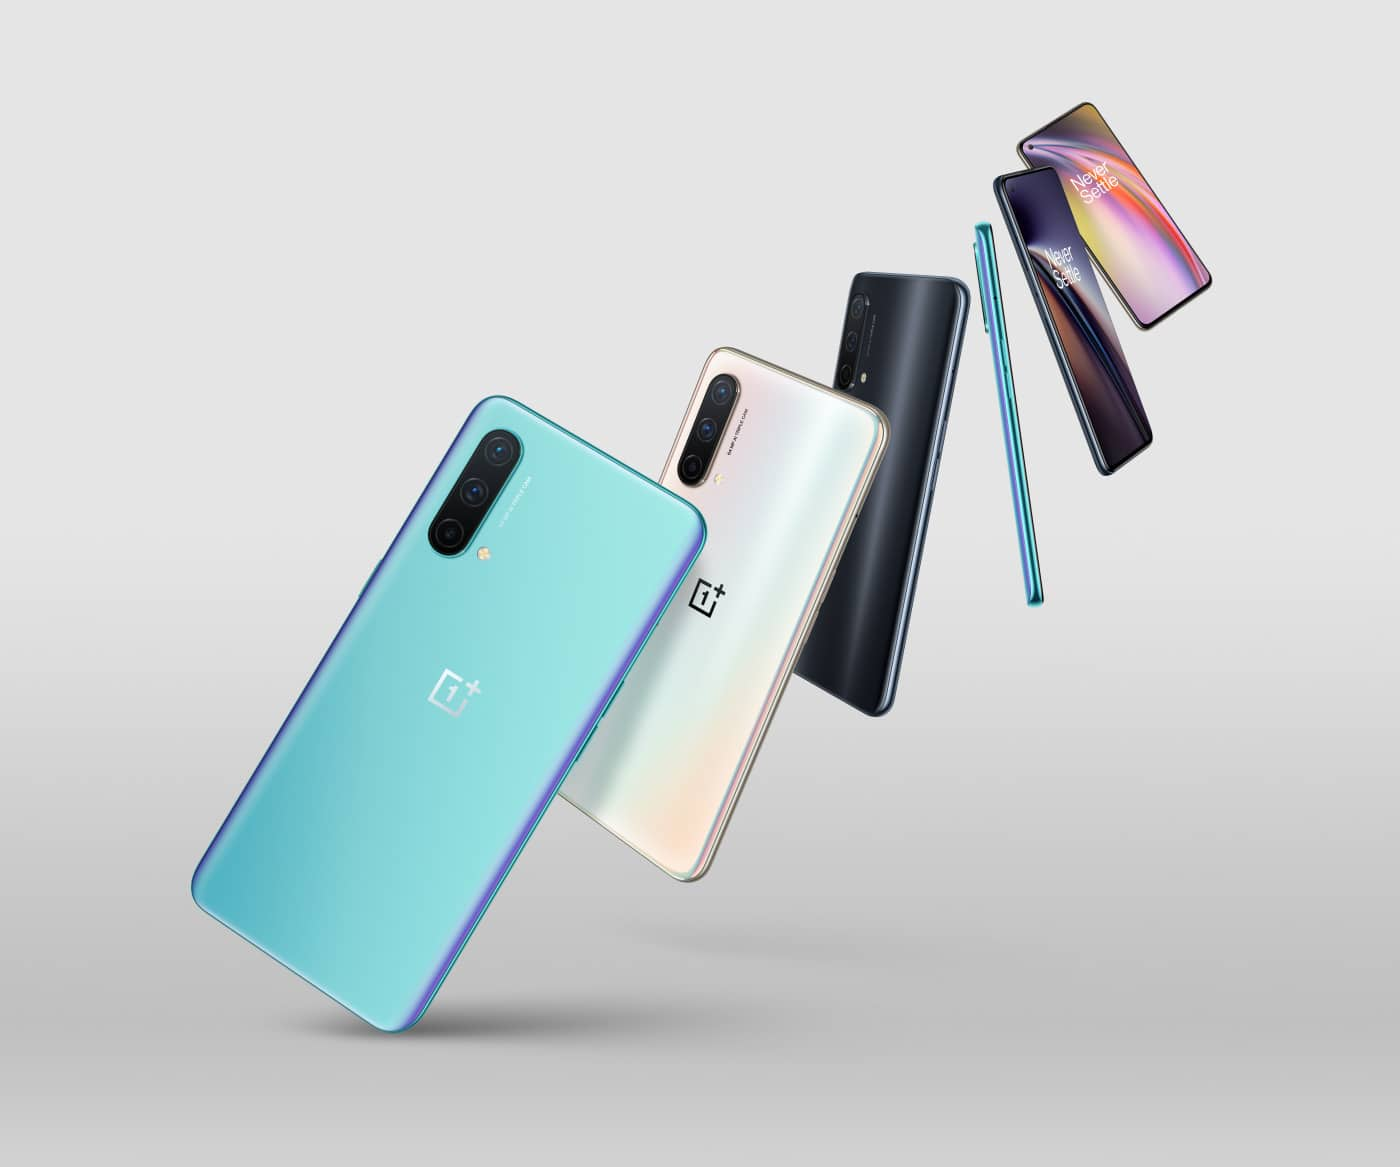 oneplus-nord-ce-5G-leader-smartphone-milieu-gamme